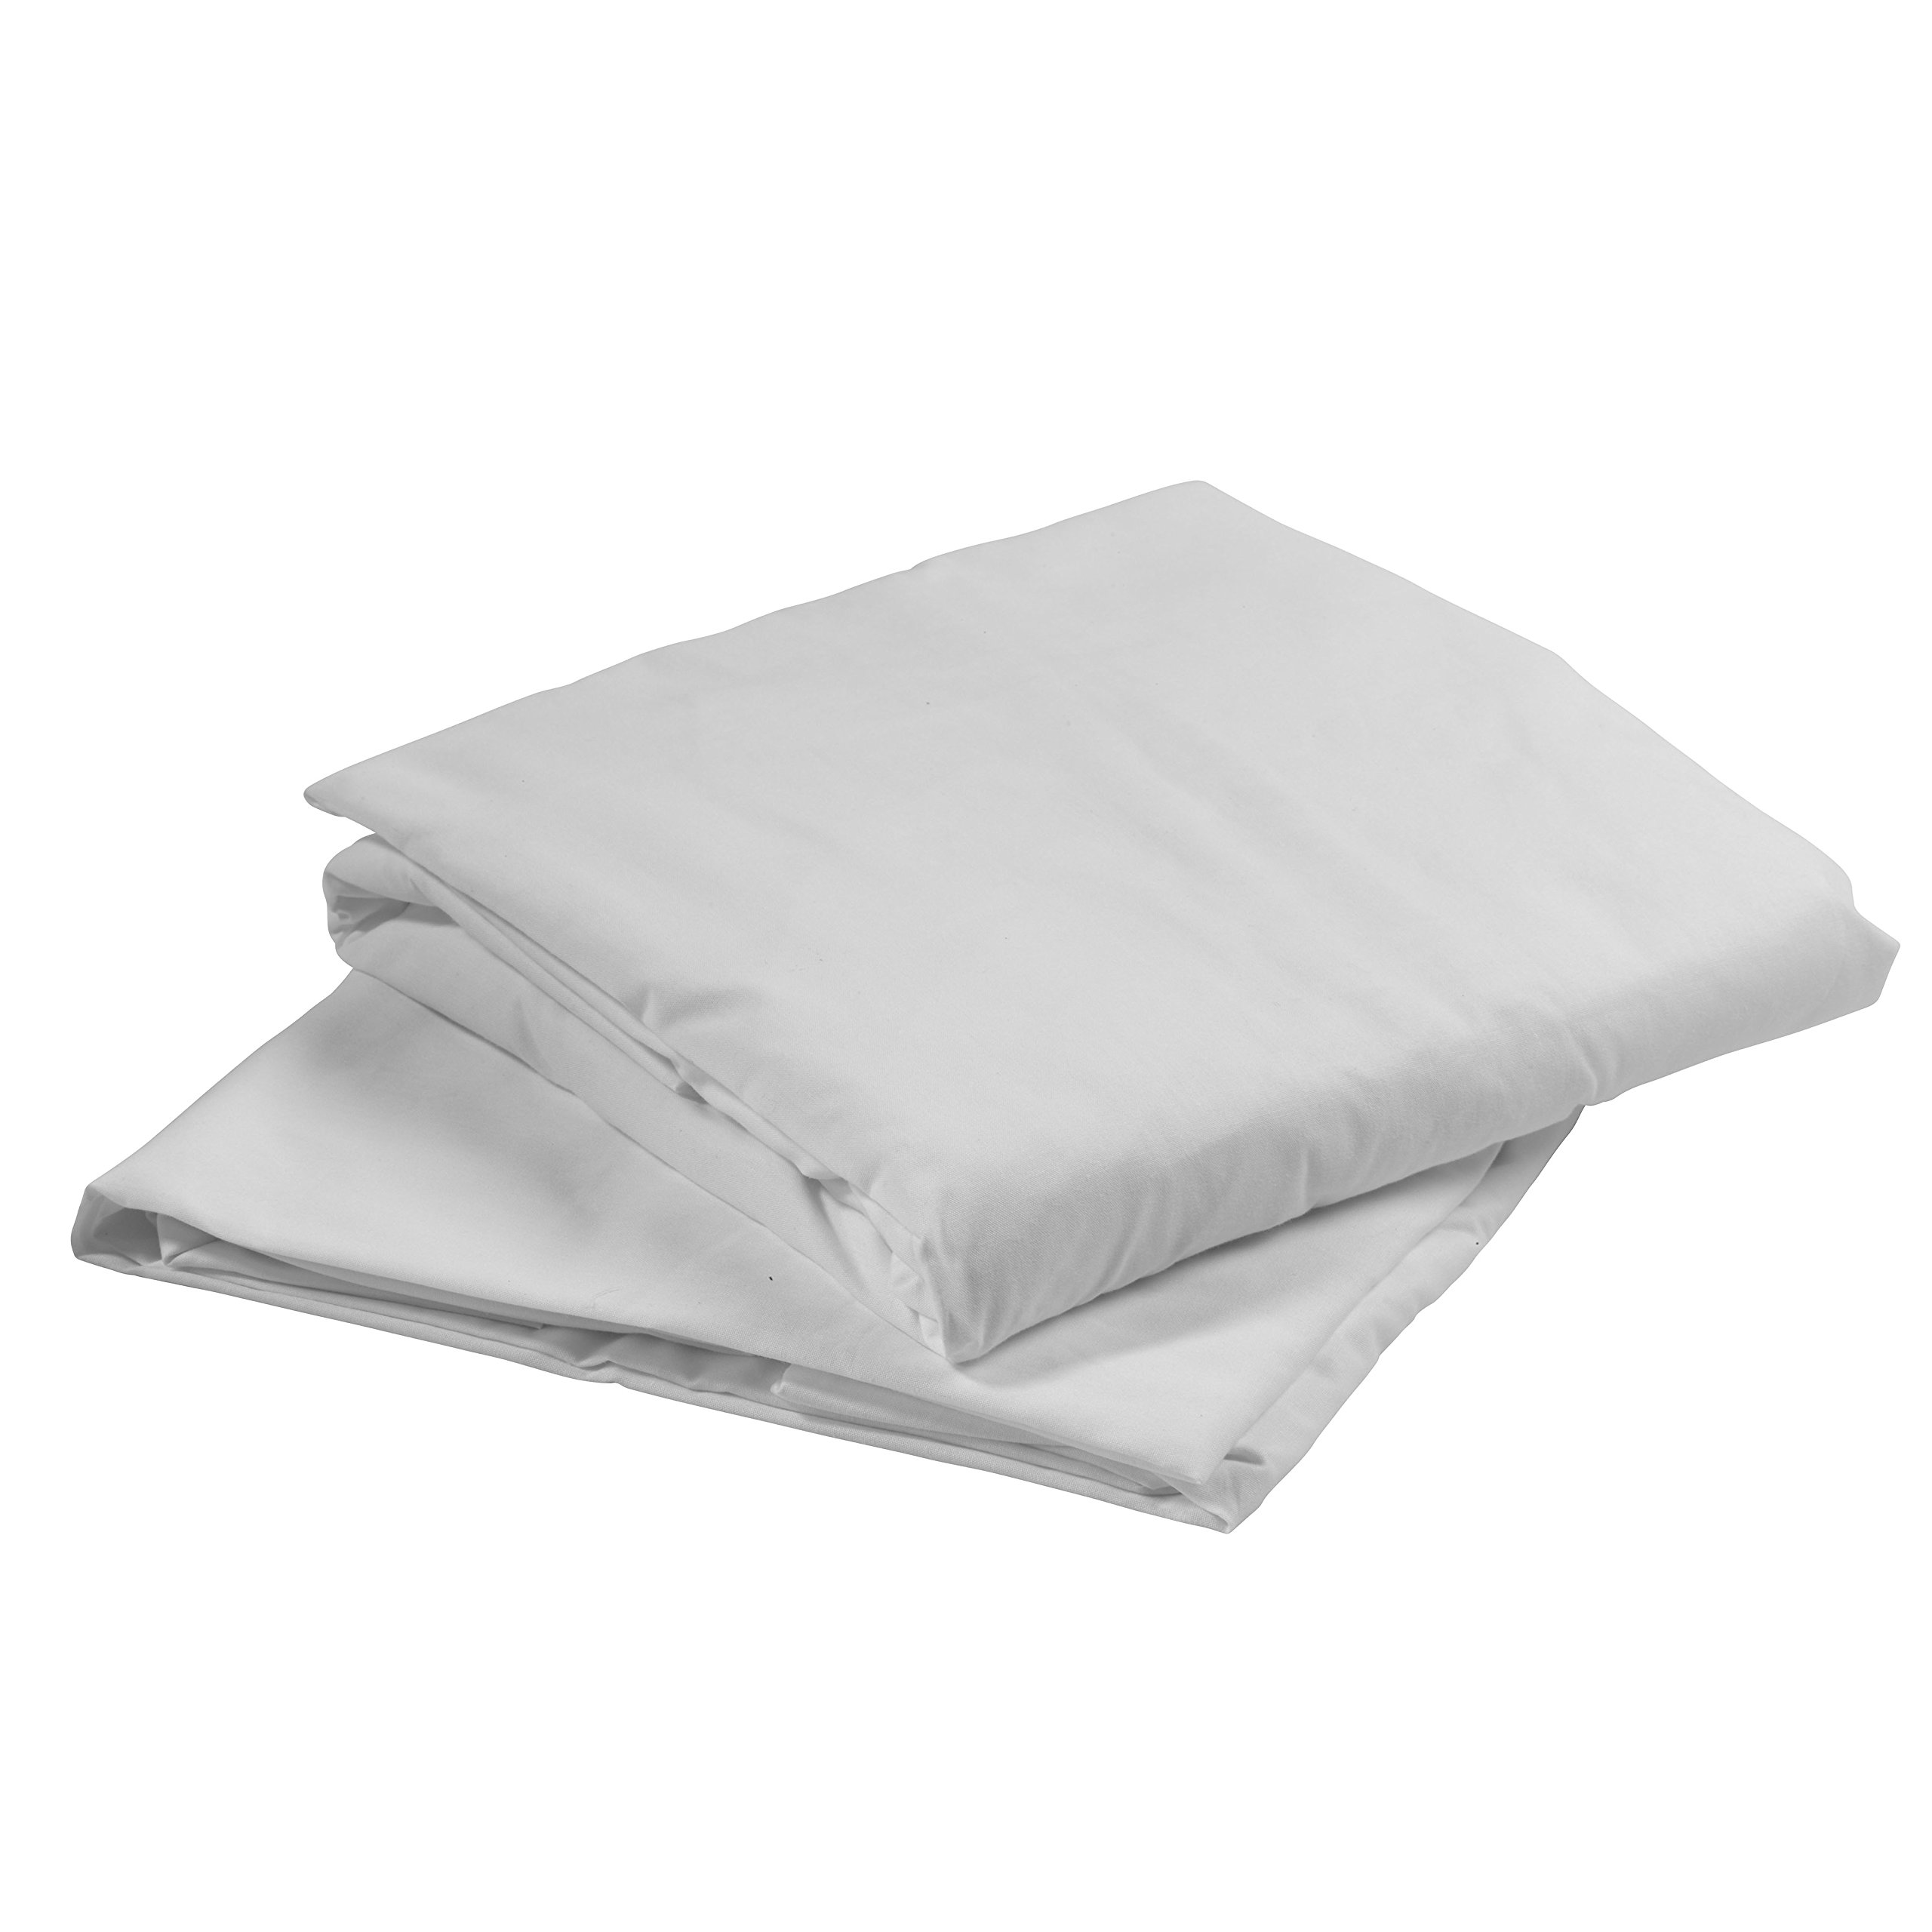 Drive Medical 15030HBL Hospital Bed Fitted Sheets, White, 36'' x 80'' x 5''-6''